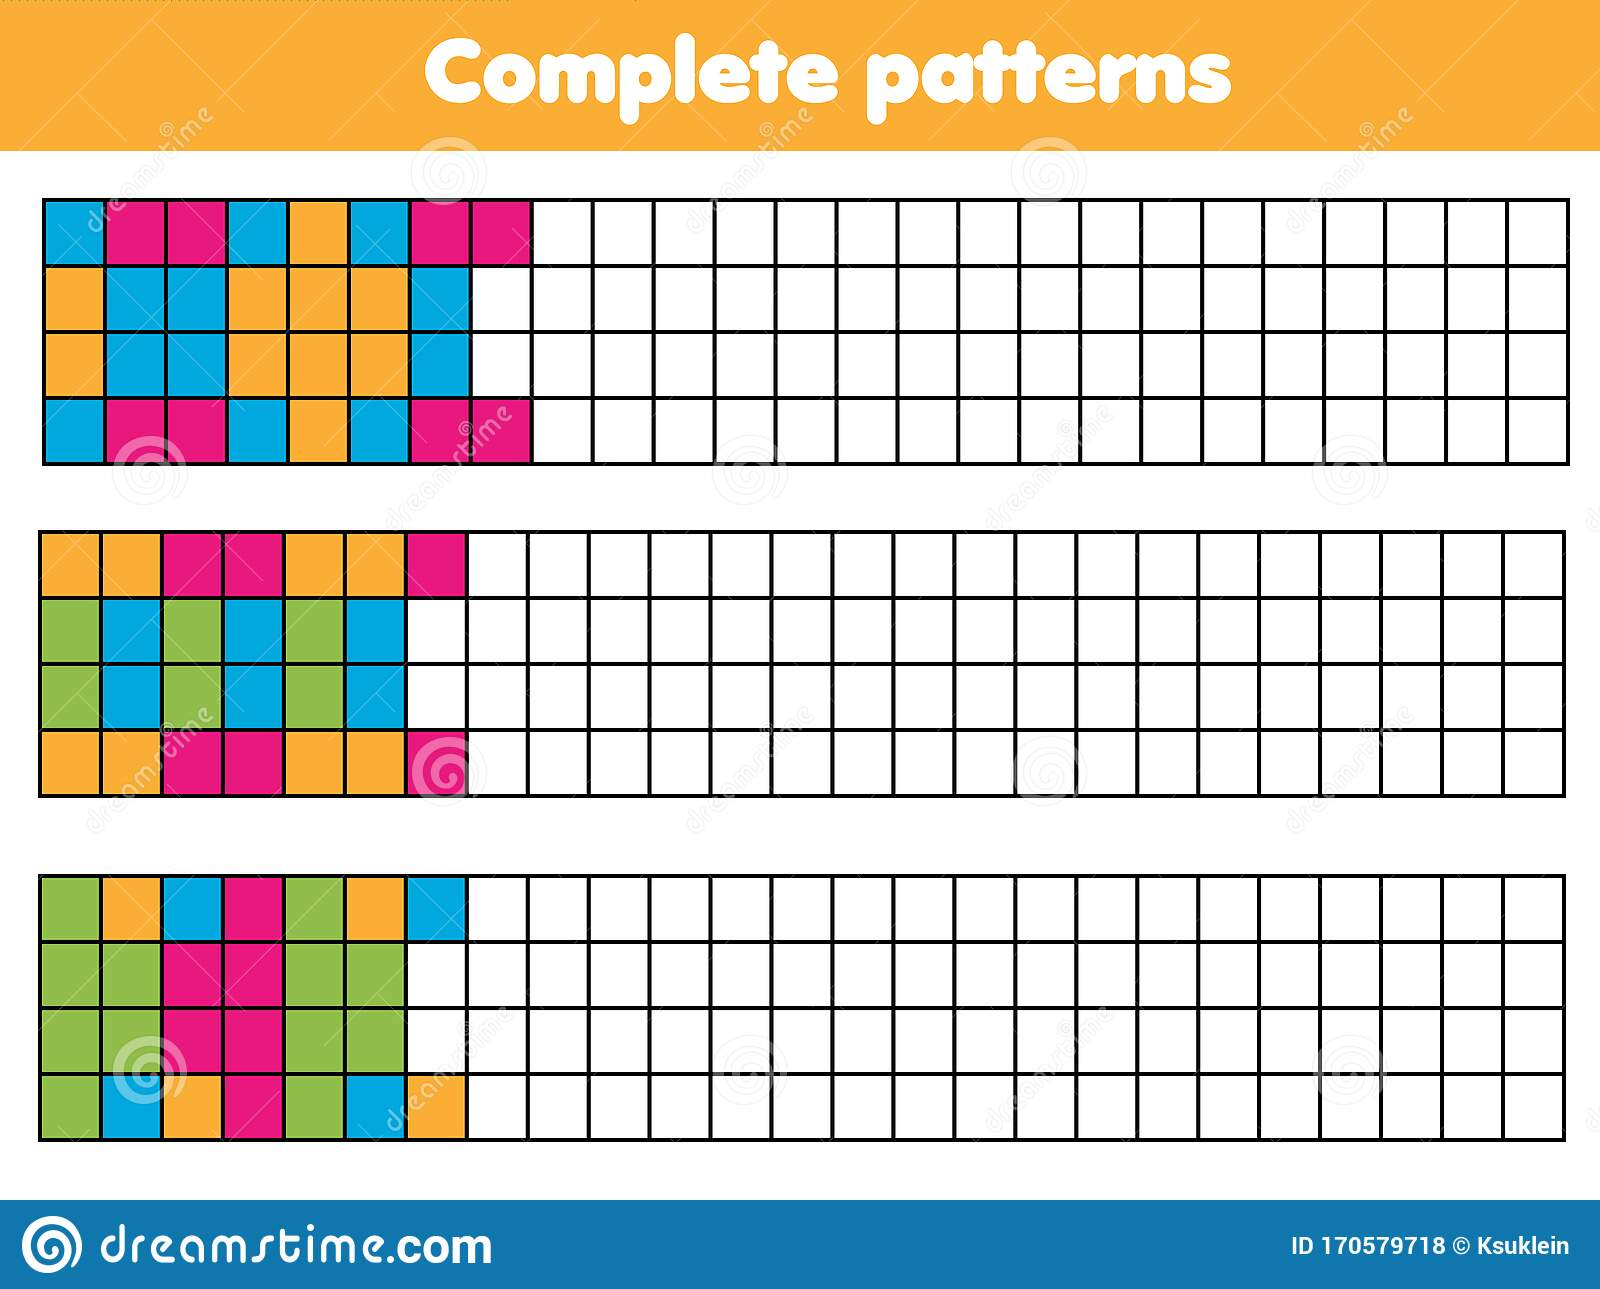 Complete Geometric Patterns Educational Game For Children